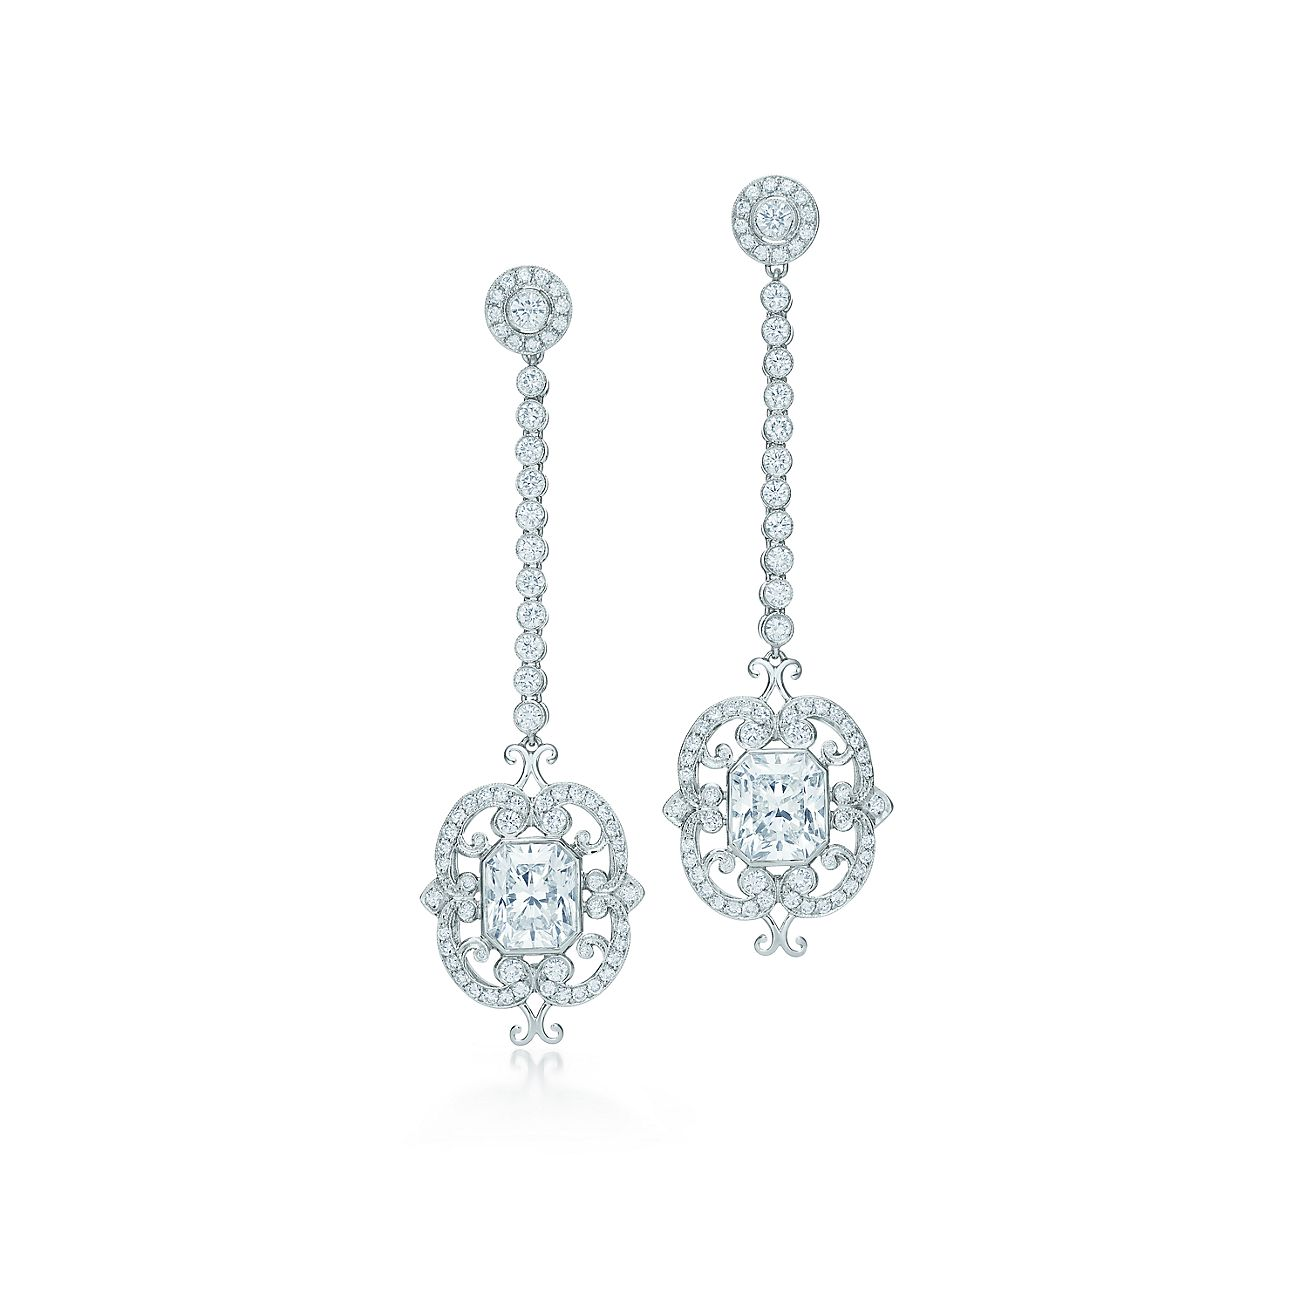 Tiffany and co diamond drop earrings for Diamond and jewelry exchange orlando